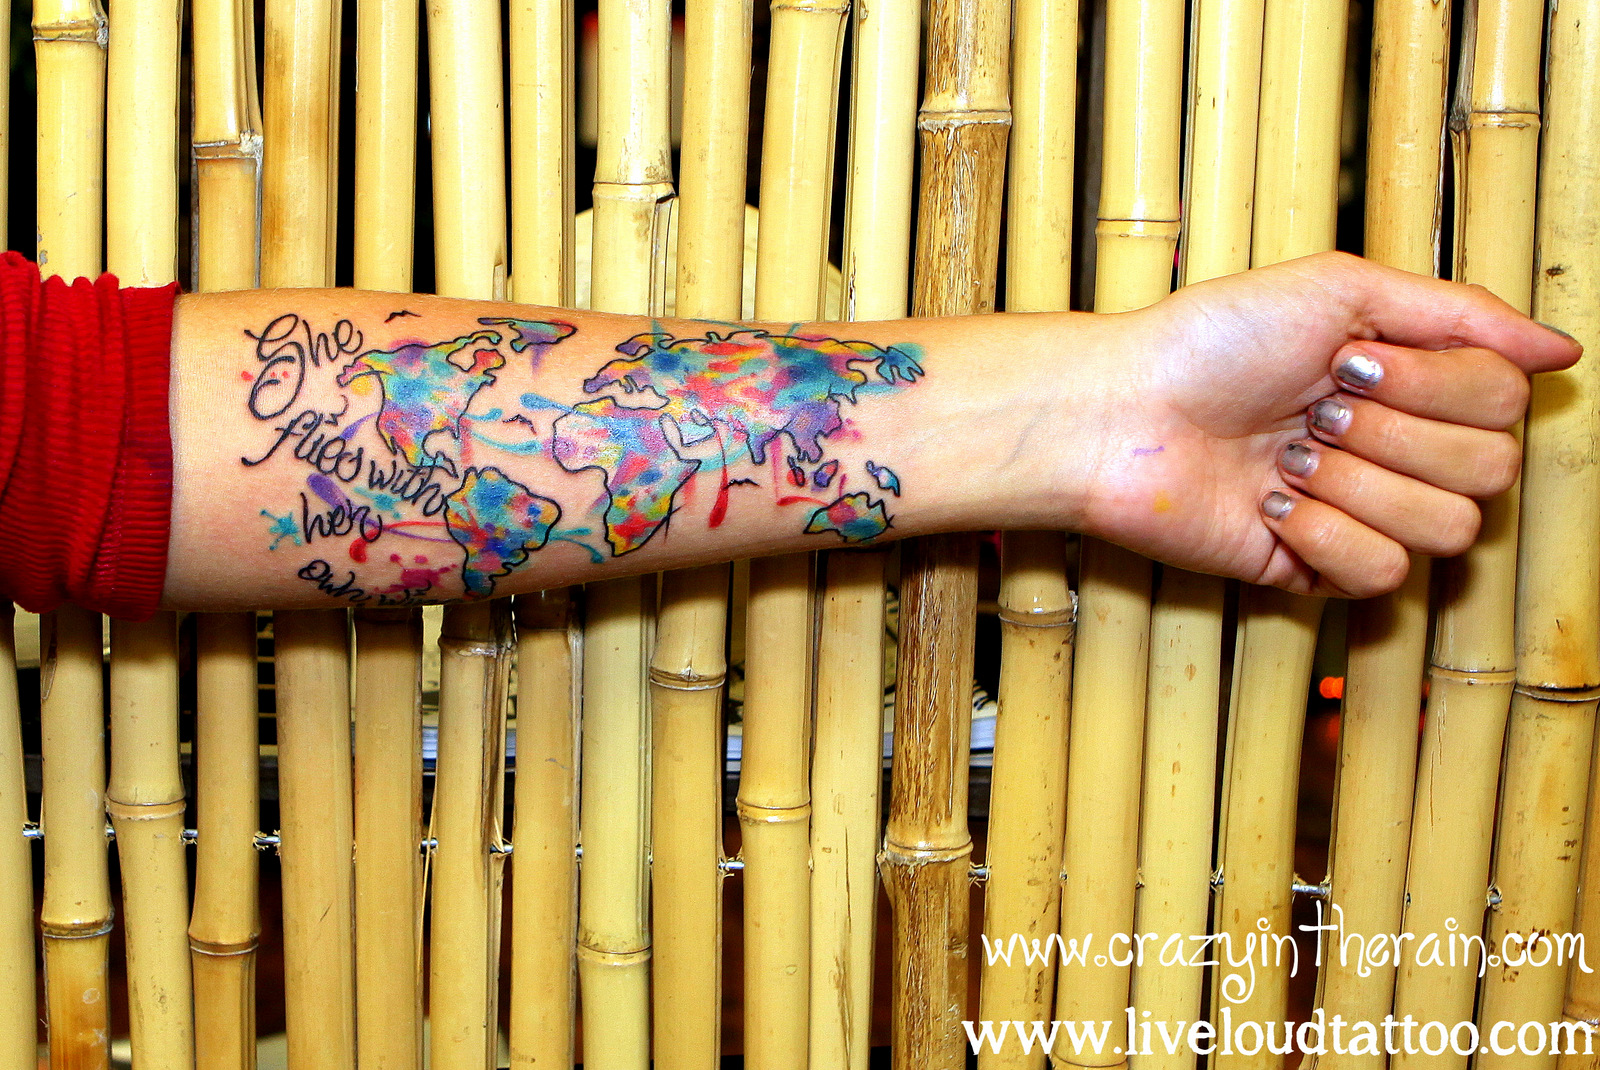 travel tattoo backpacking tattoo map tattoo continents tattoo abstract tattoo painted tattoo she flies with her own wings colorful tattoo